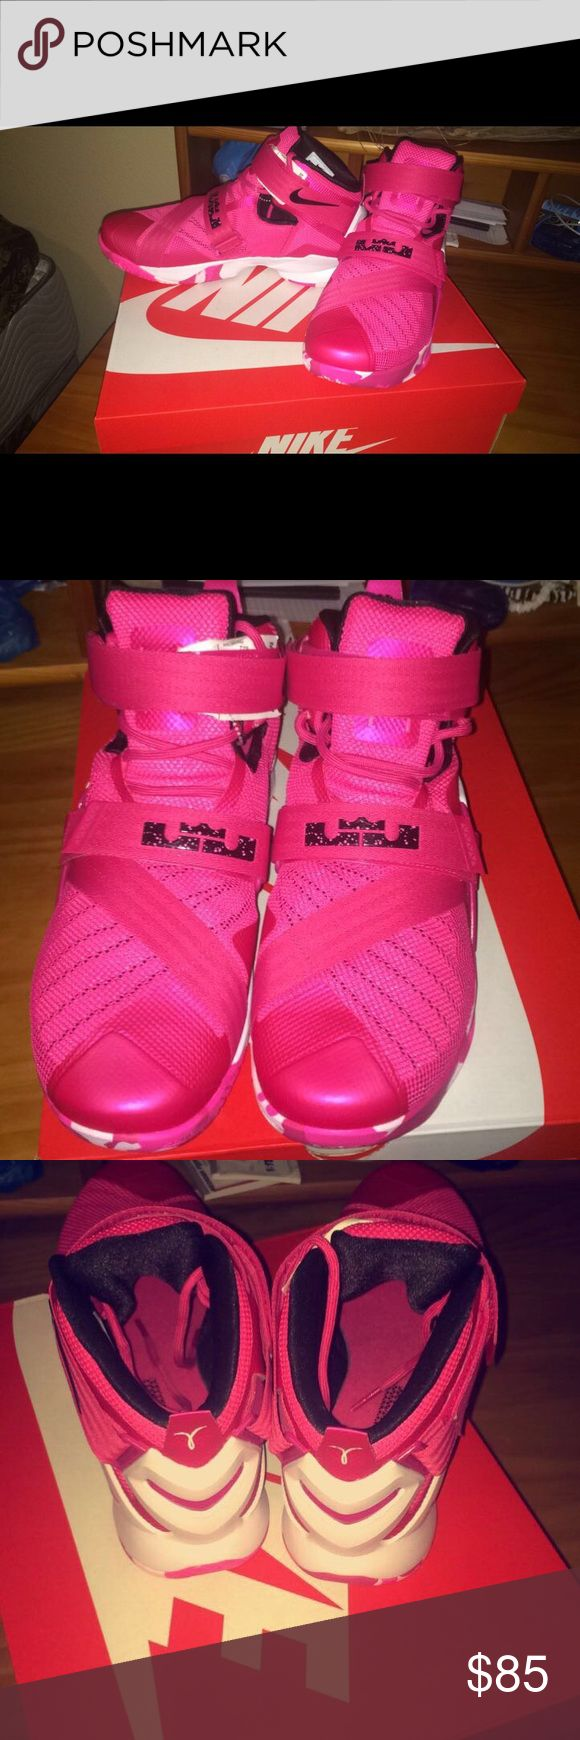 Pink LeBron Soldiers Size 11.5 Condition 9/10 Willing to trade Shoes Athletic Shoes